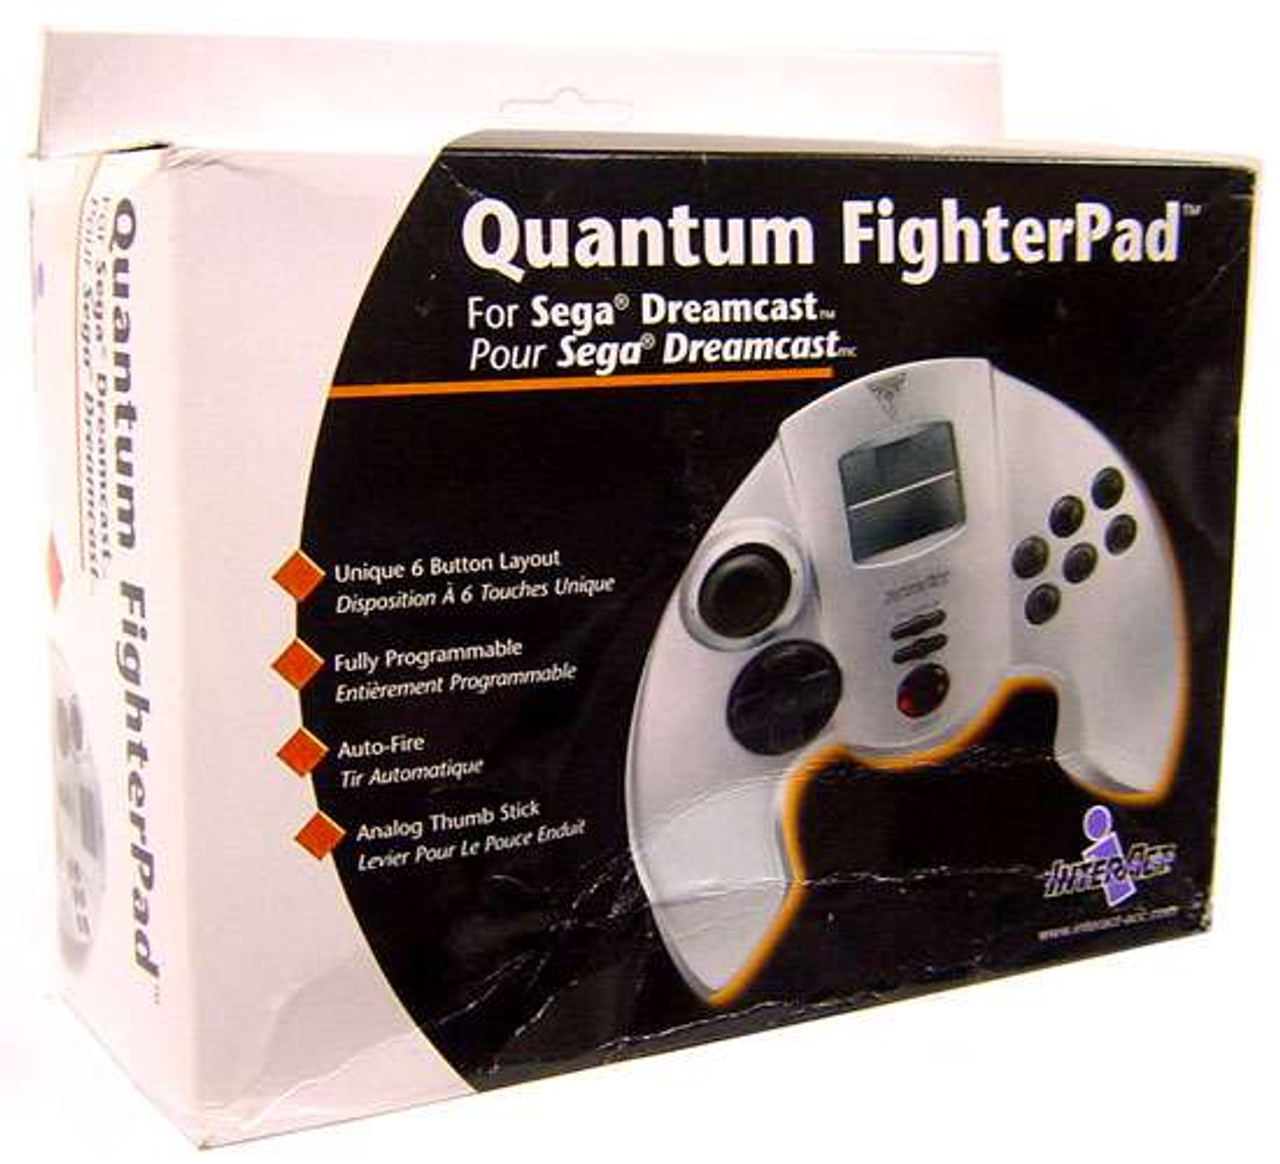 Sega Dreamcast Quantum Fighterpad Video Game Controller Interact